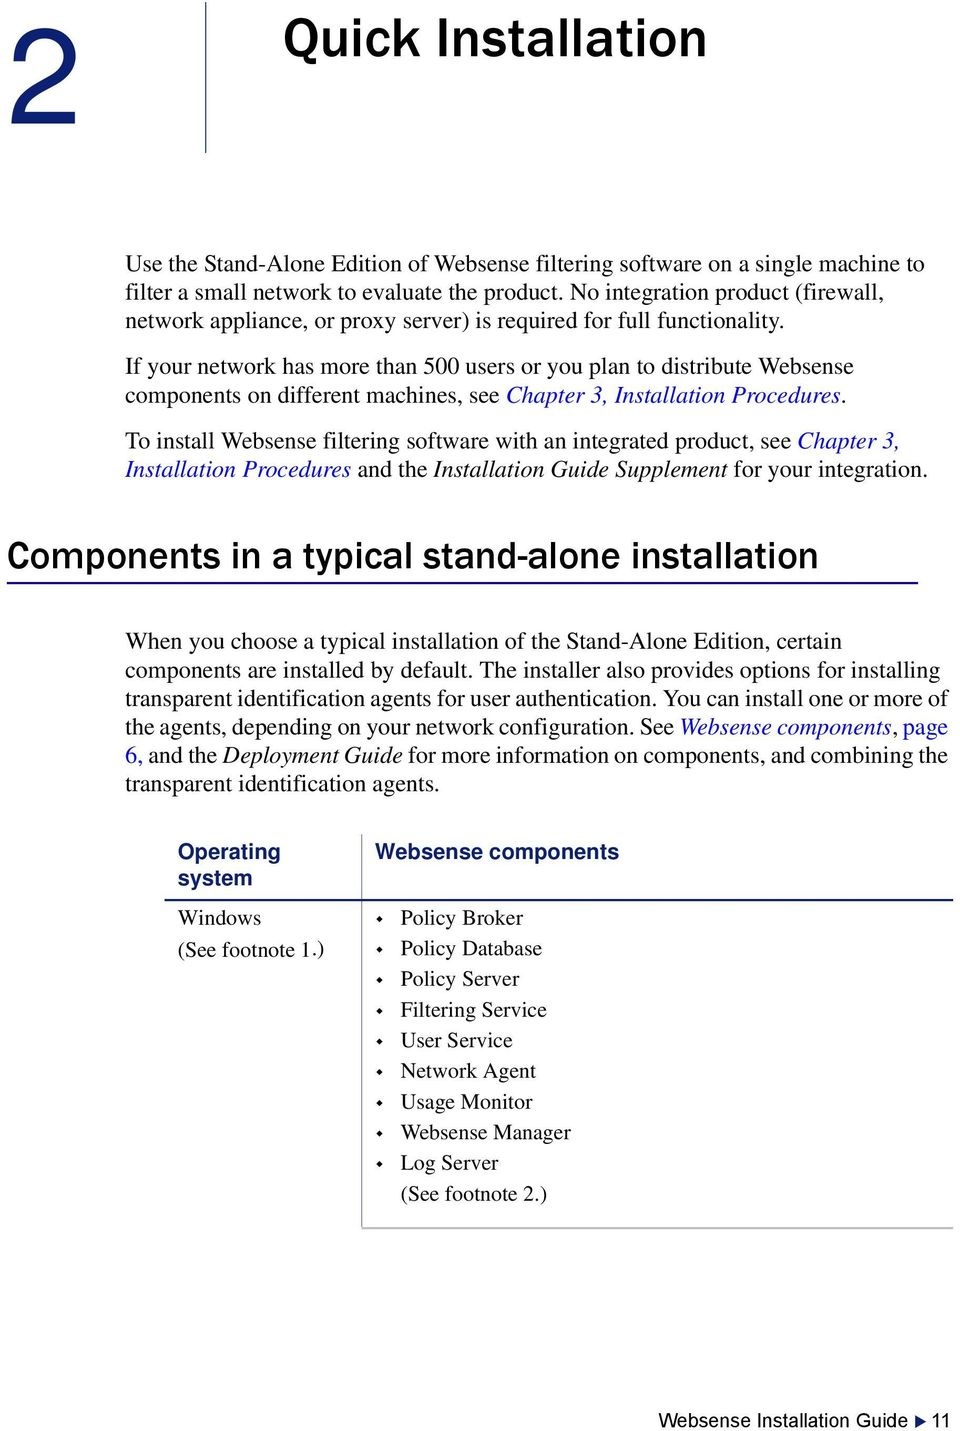 If your network has more than 500 users or you plan to distribute Websense components on different machines, see Chapter 3, Installation Procedures.